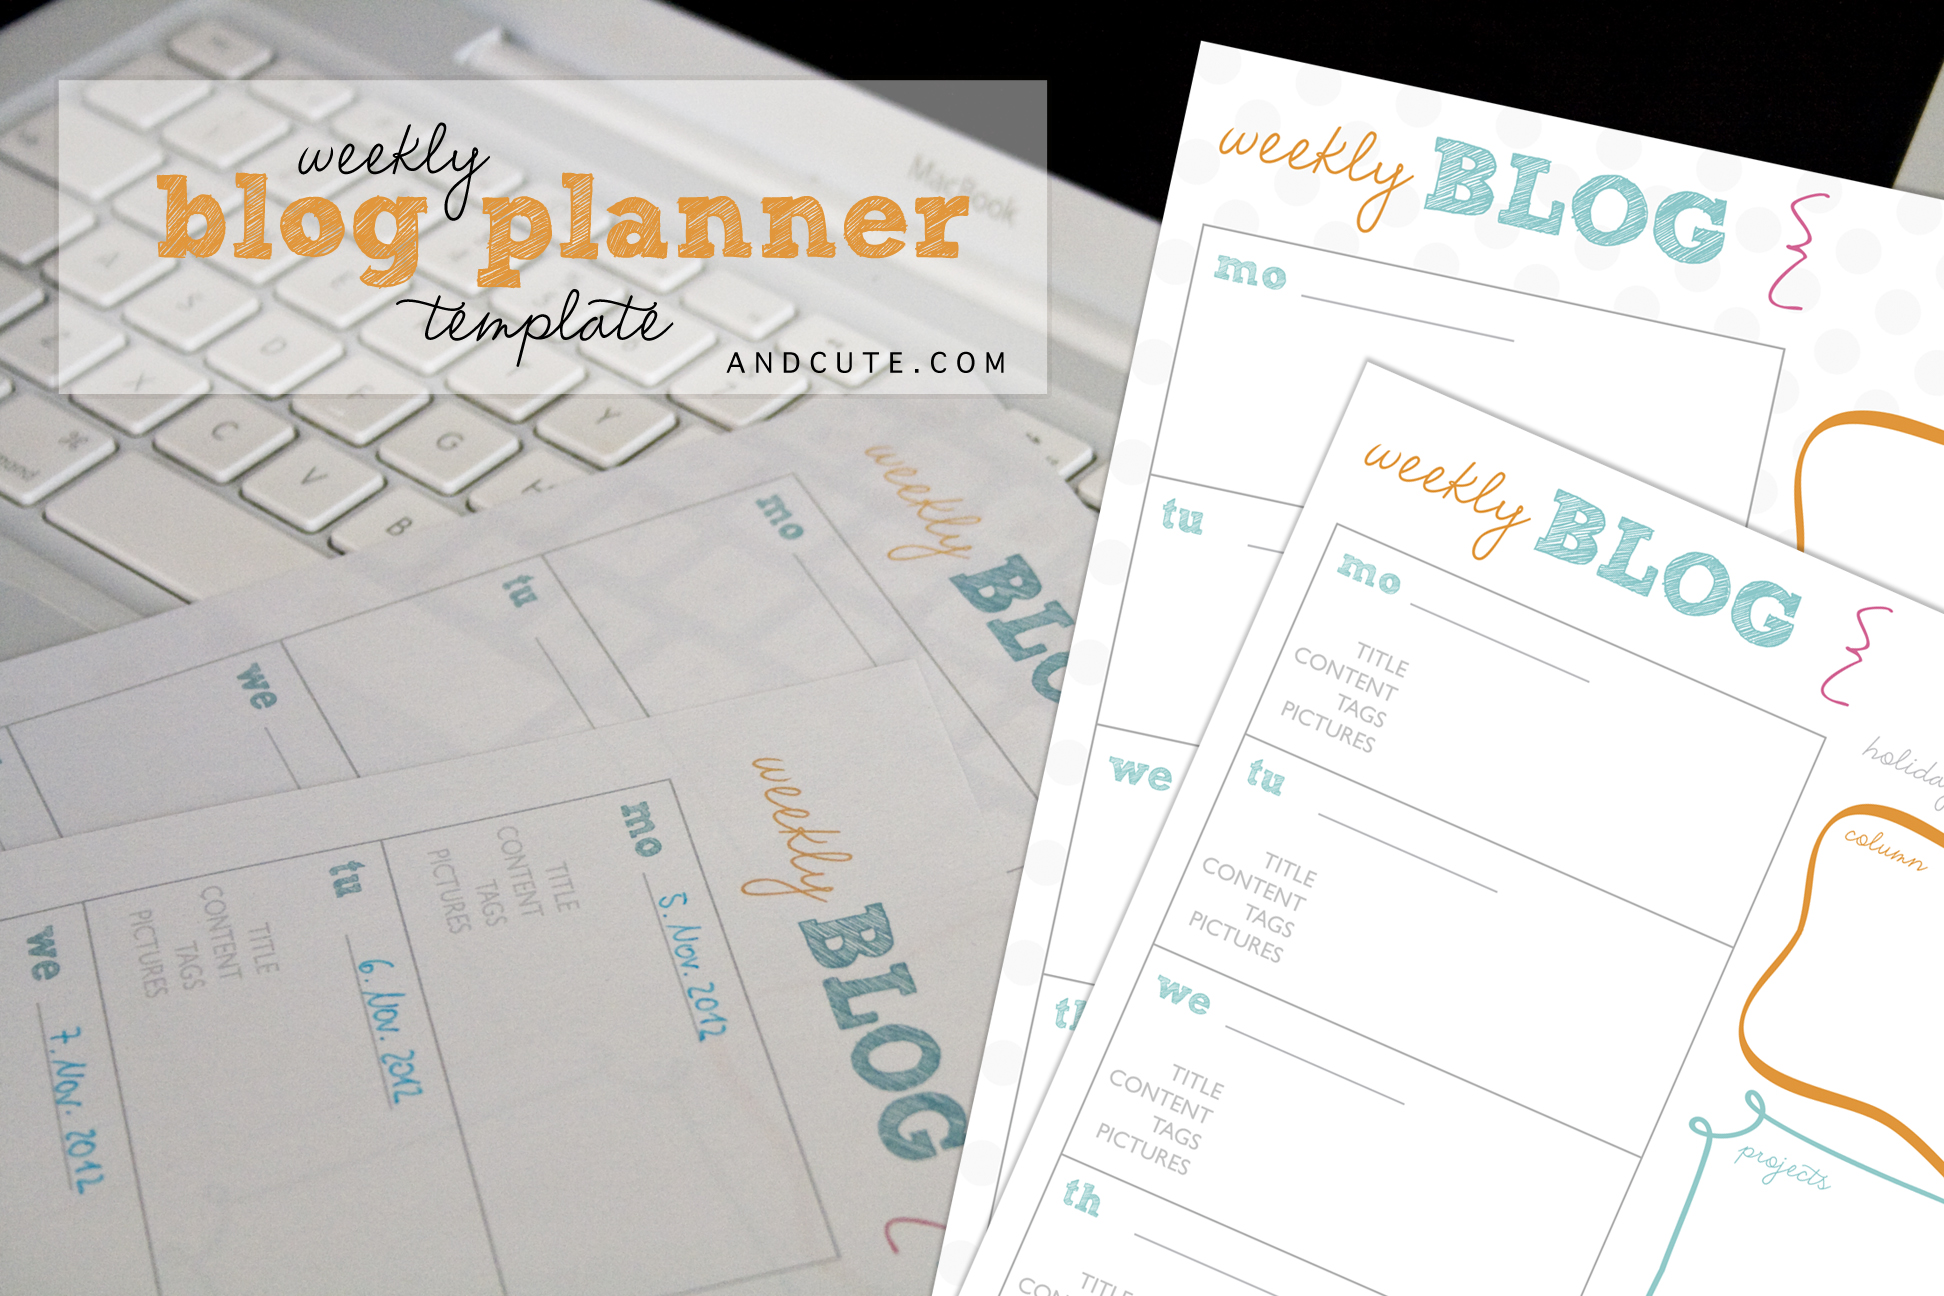 graphic about Blog Planner Template identified as Weekly Blog site Planner Printable Template